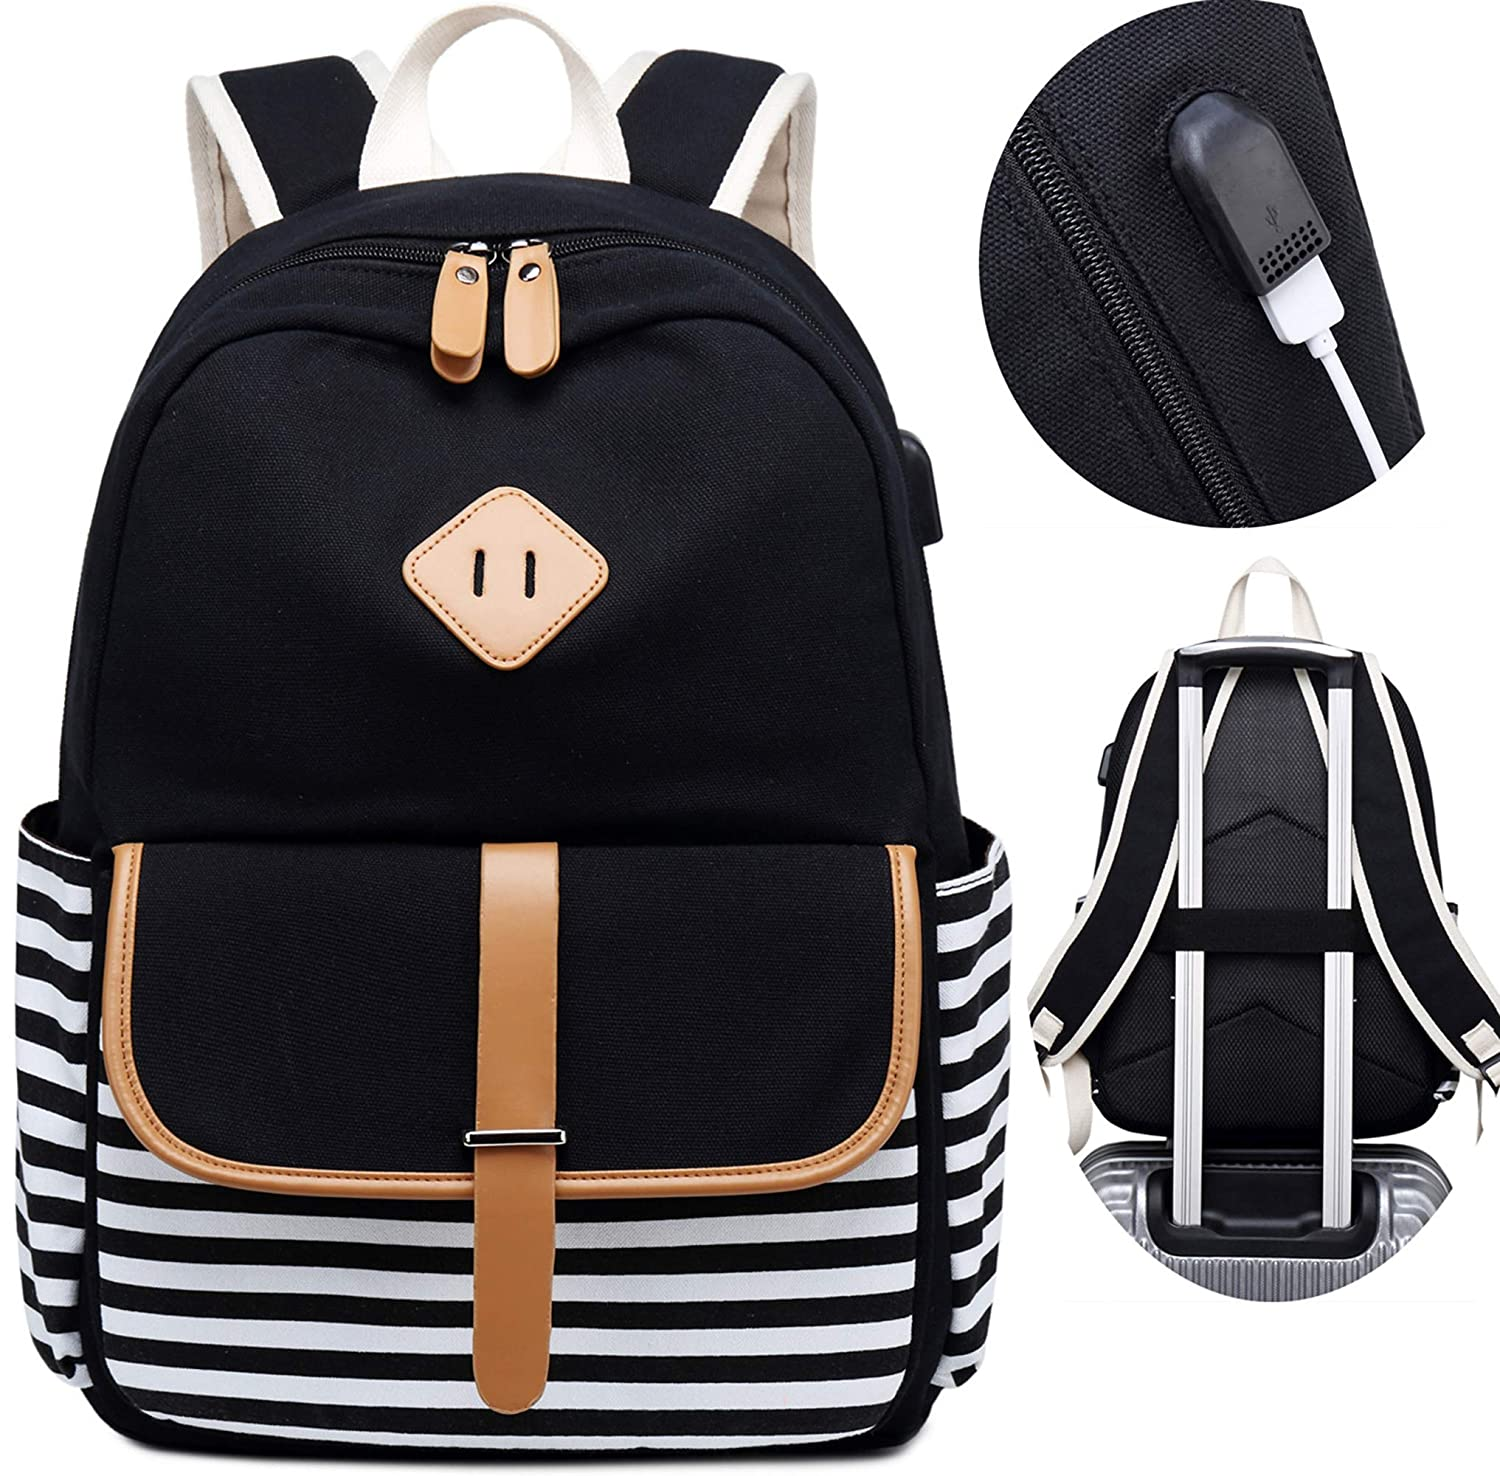 Travel Laptop Backpacks Womens Girls College School Backpack with USB Charger Port and over Luggage Trolley Sleeve Black